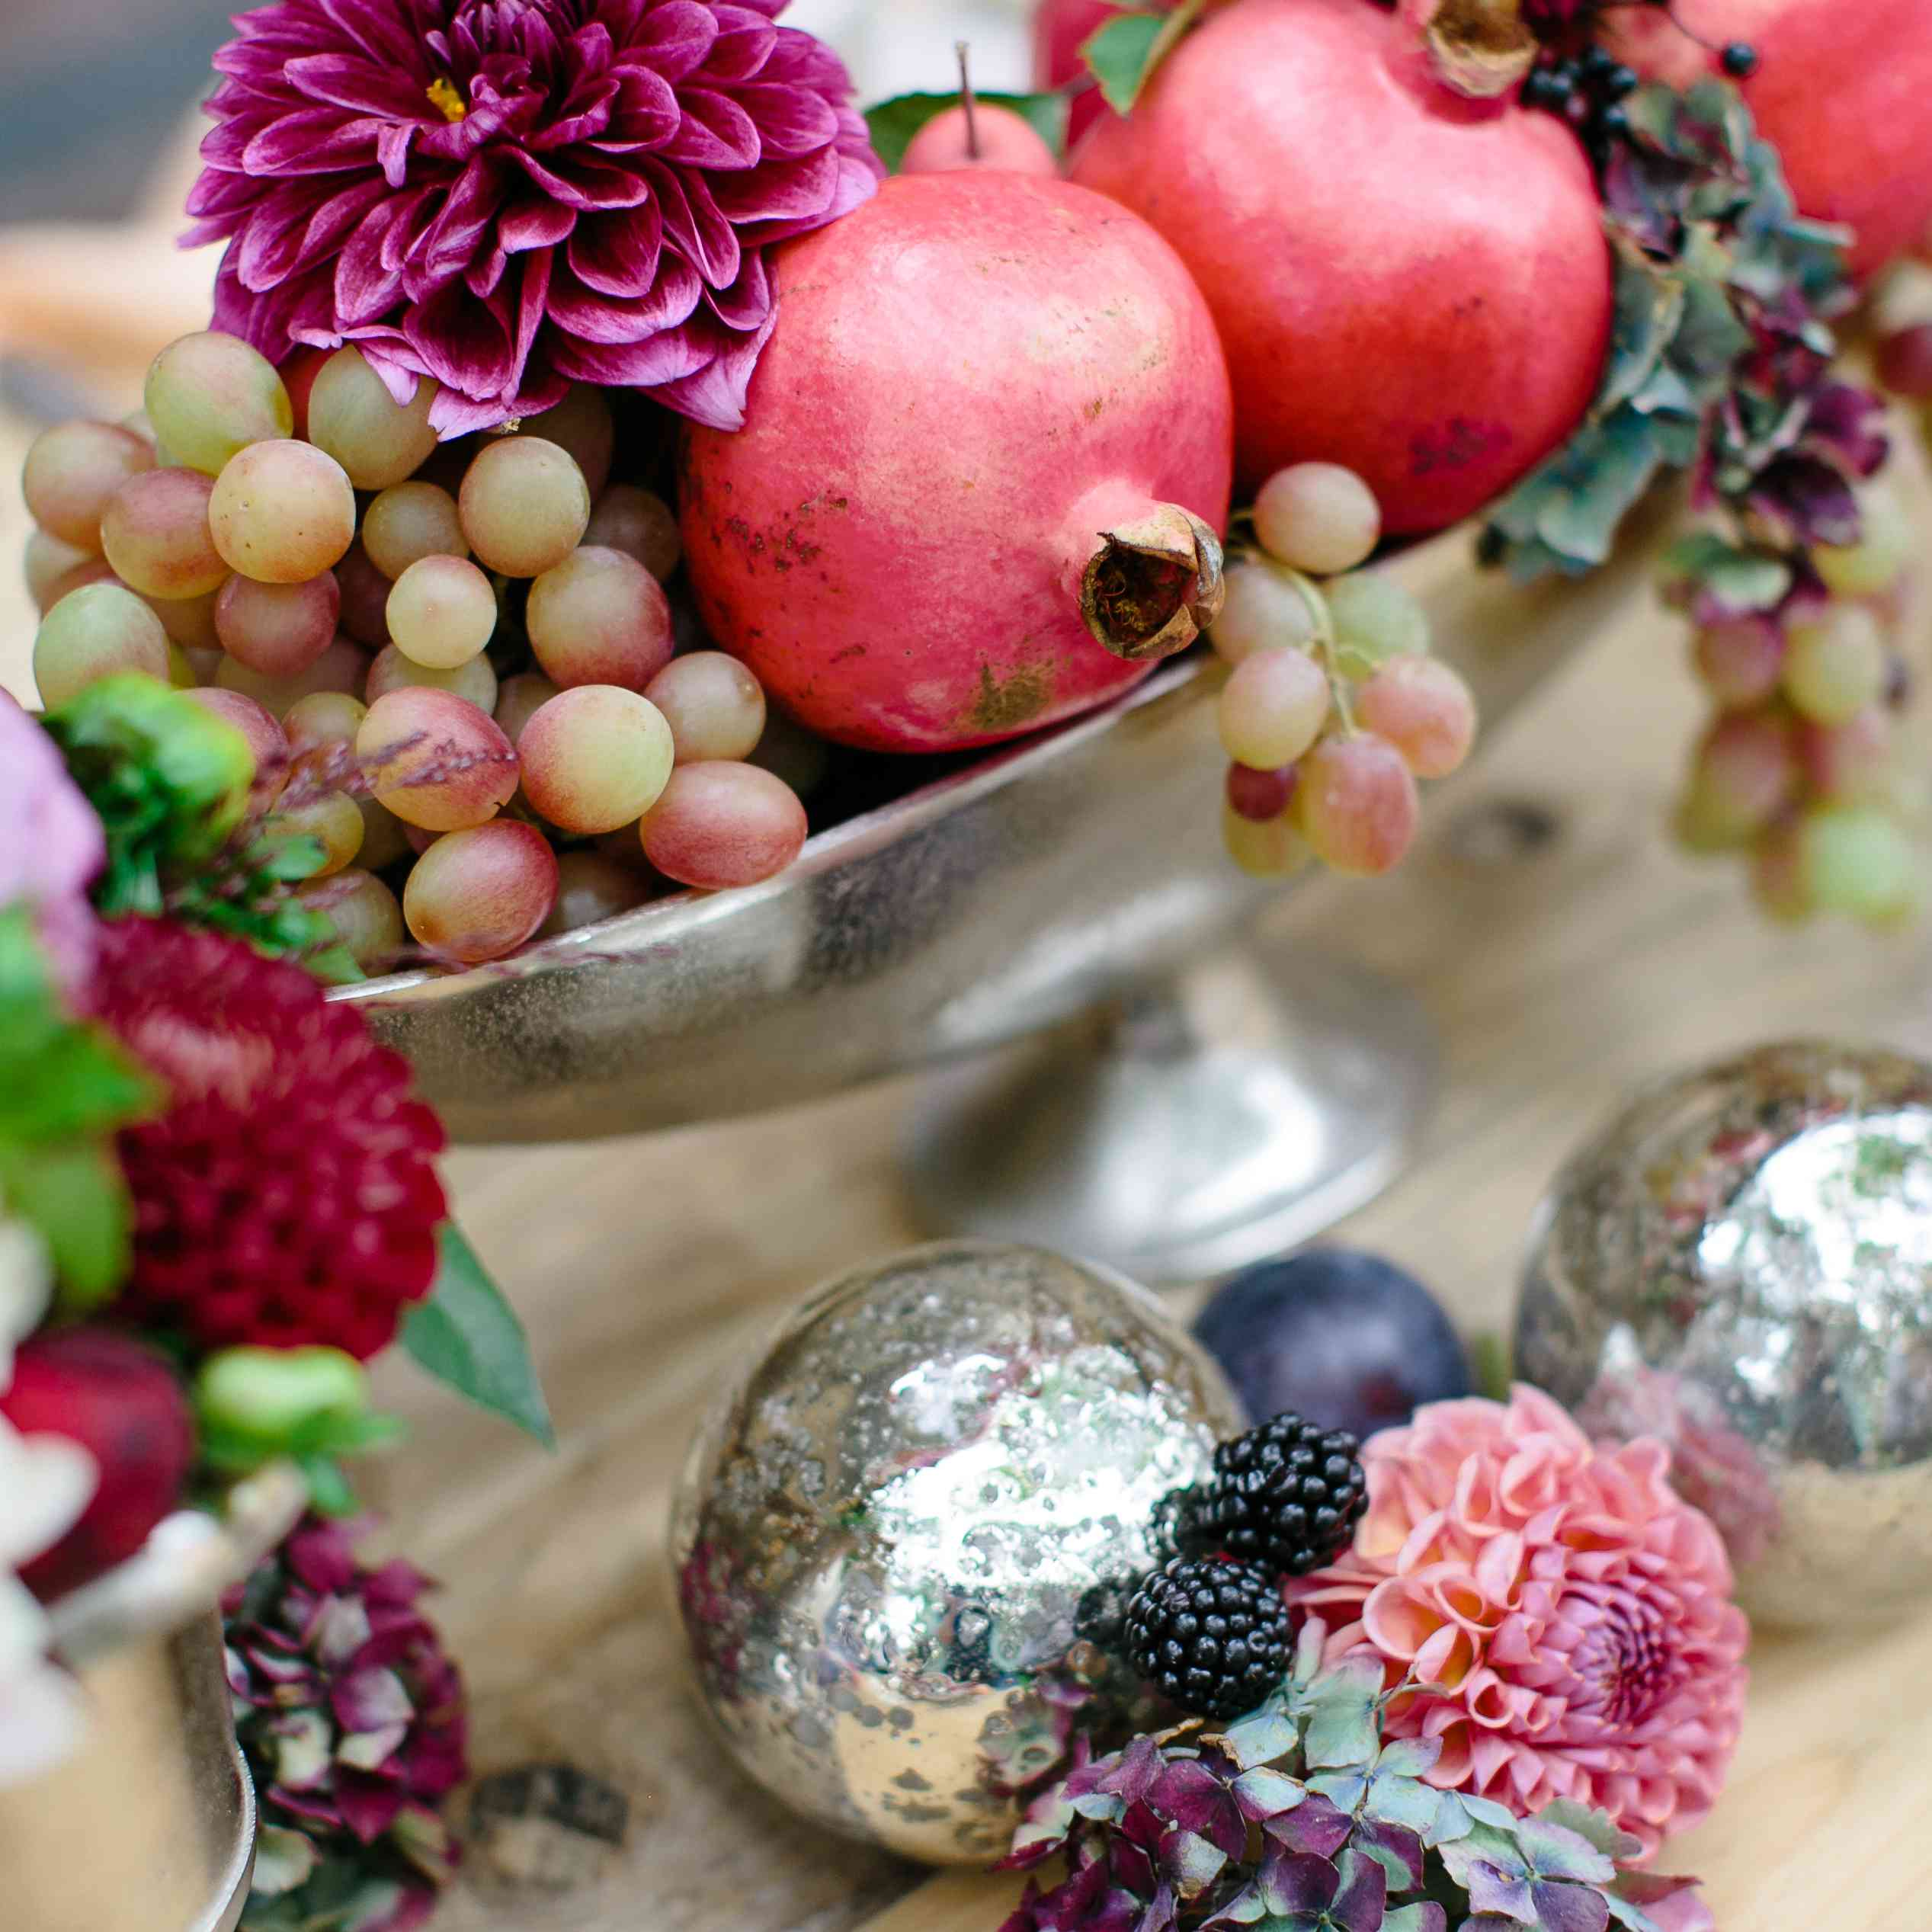 Berries and plums used in a centerpiece